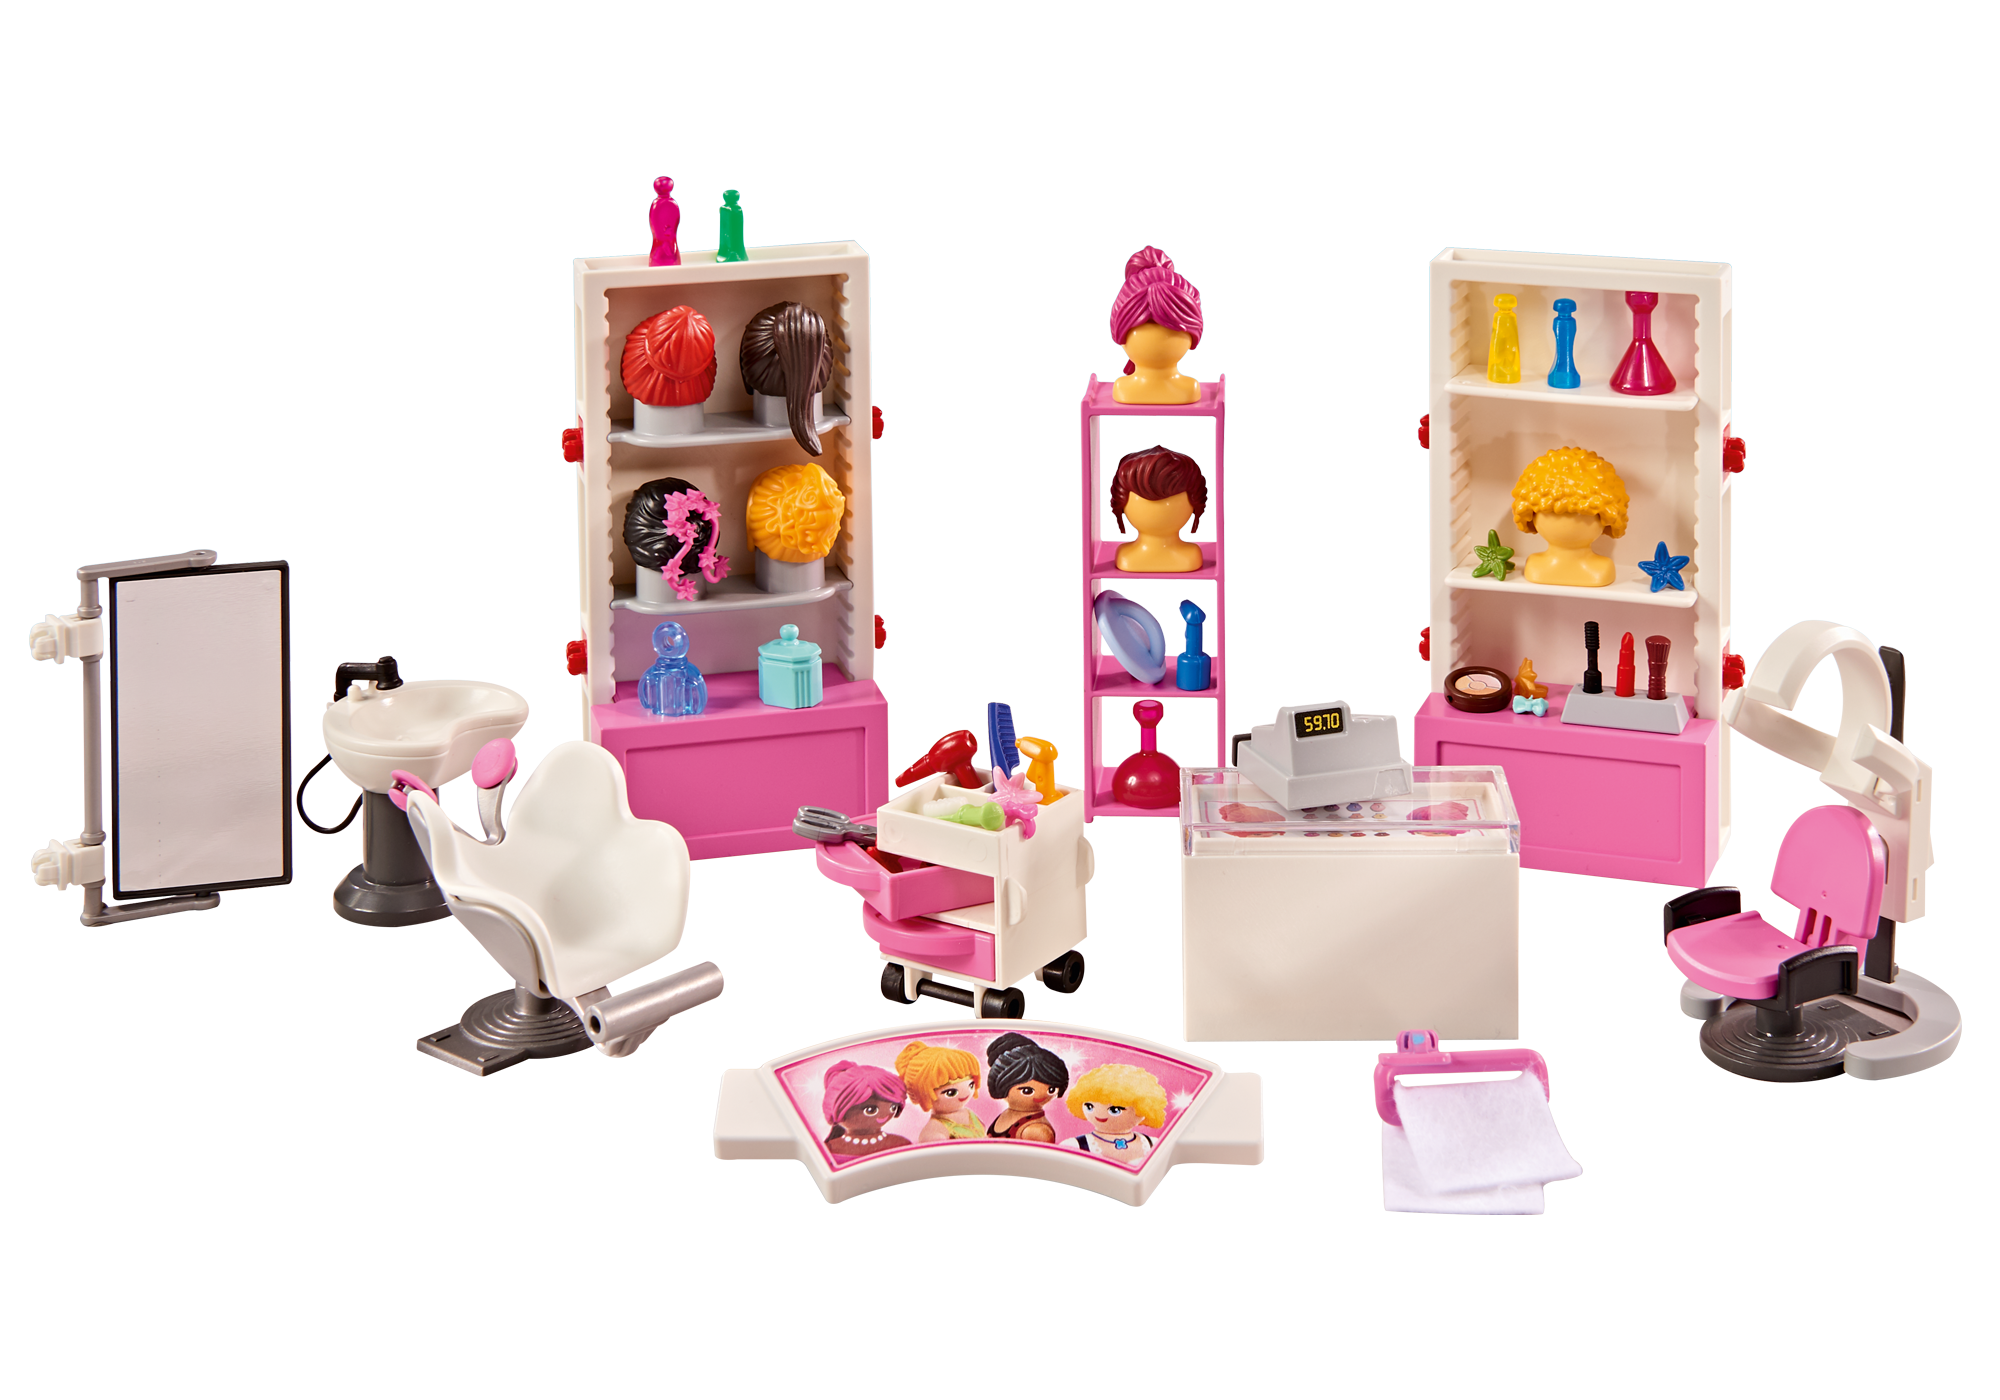 http://media.playmobil.com/i/playmobil/6568_product_detail/Inrichting kapsalon